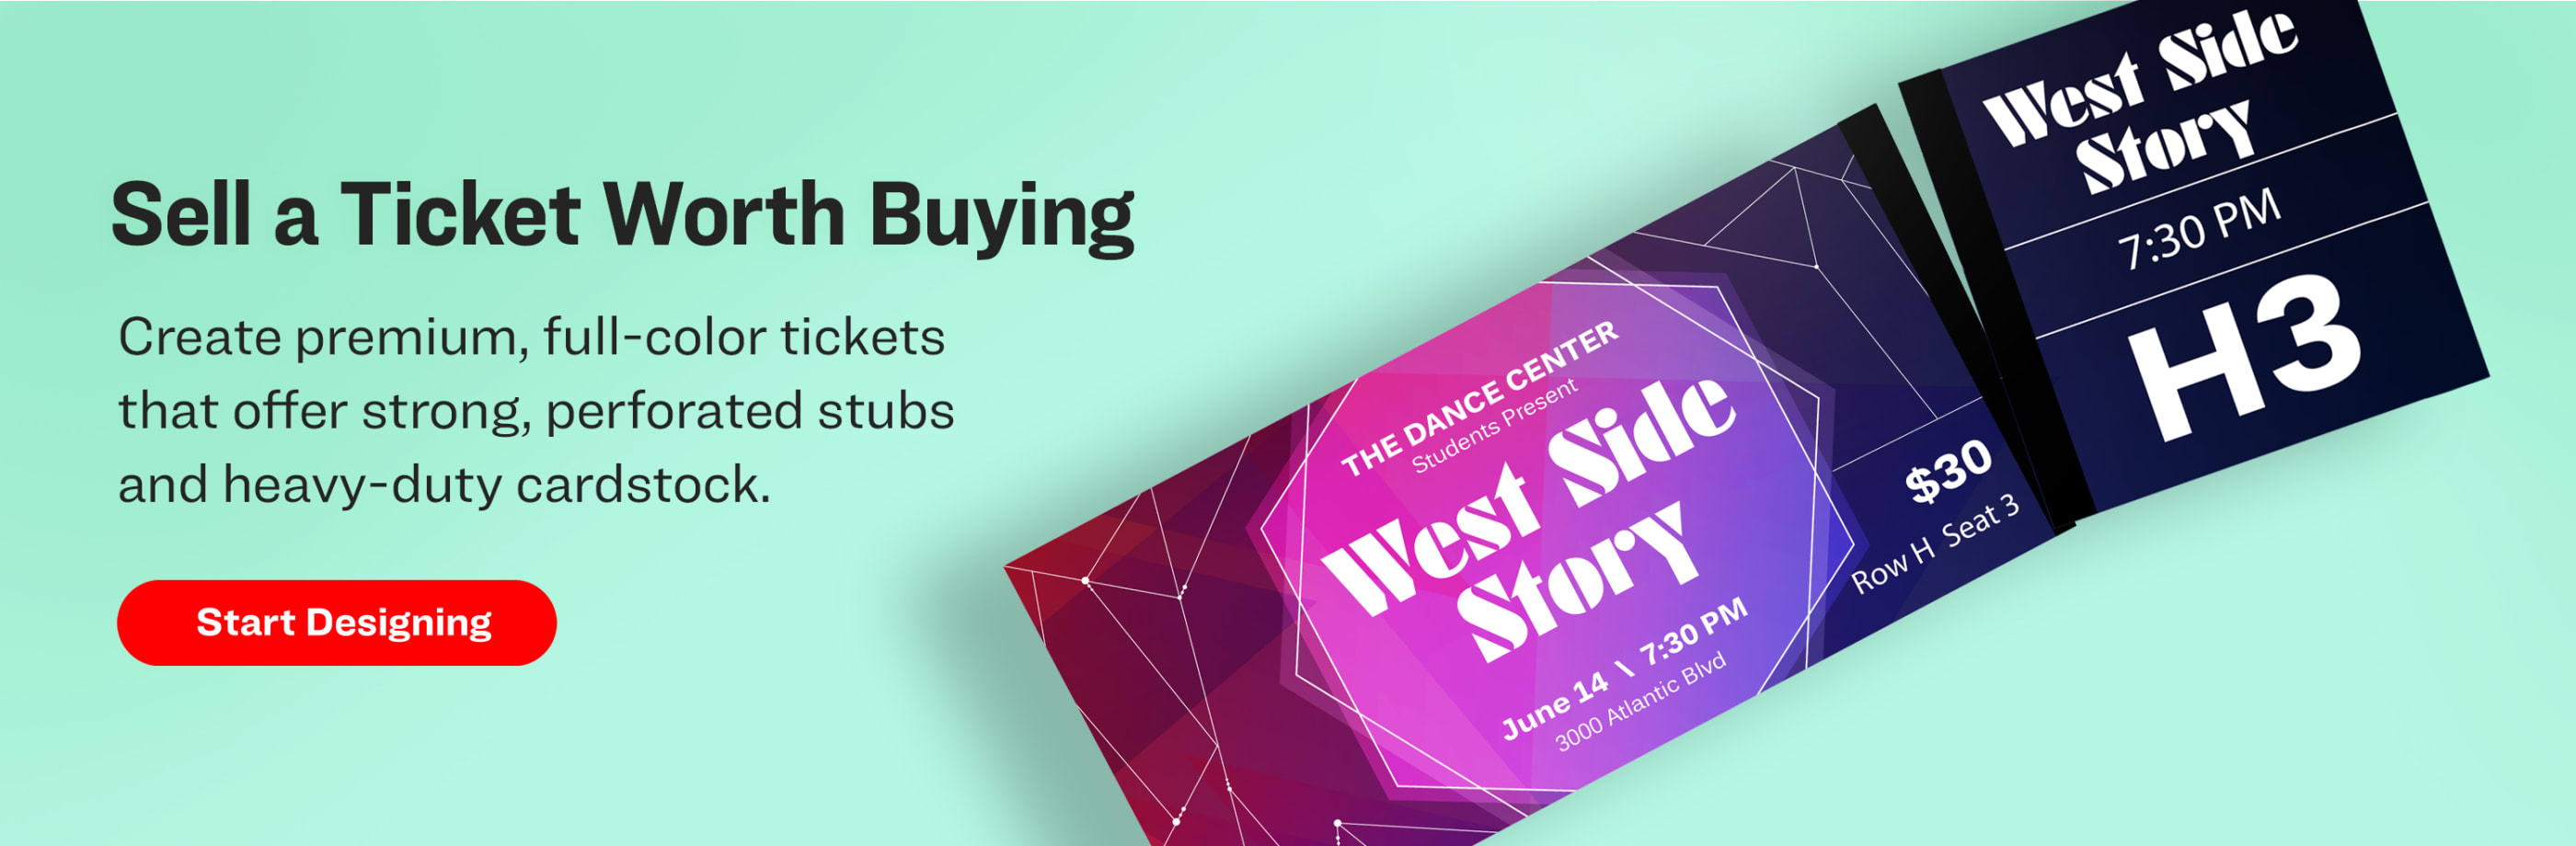 Sell a Ticket Worth Buying. Create premium, full-color tickets that offer strong, perforated stubs & heavy-duty cardstock.